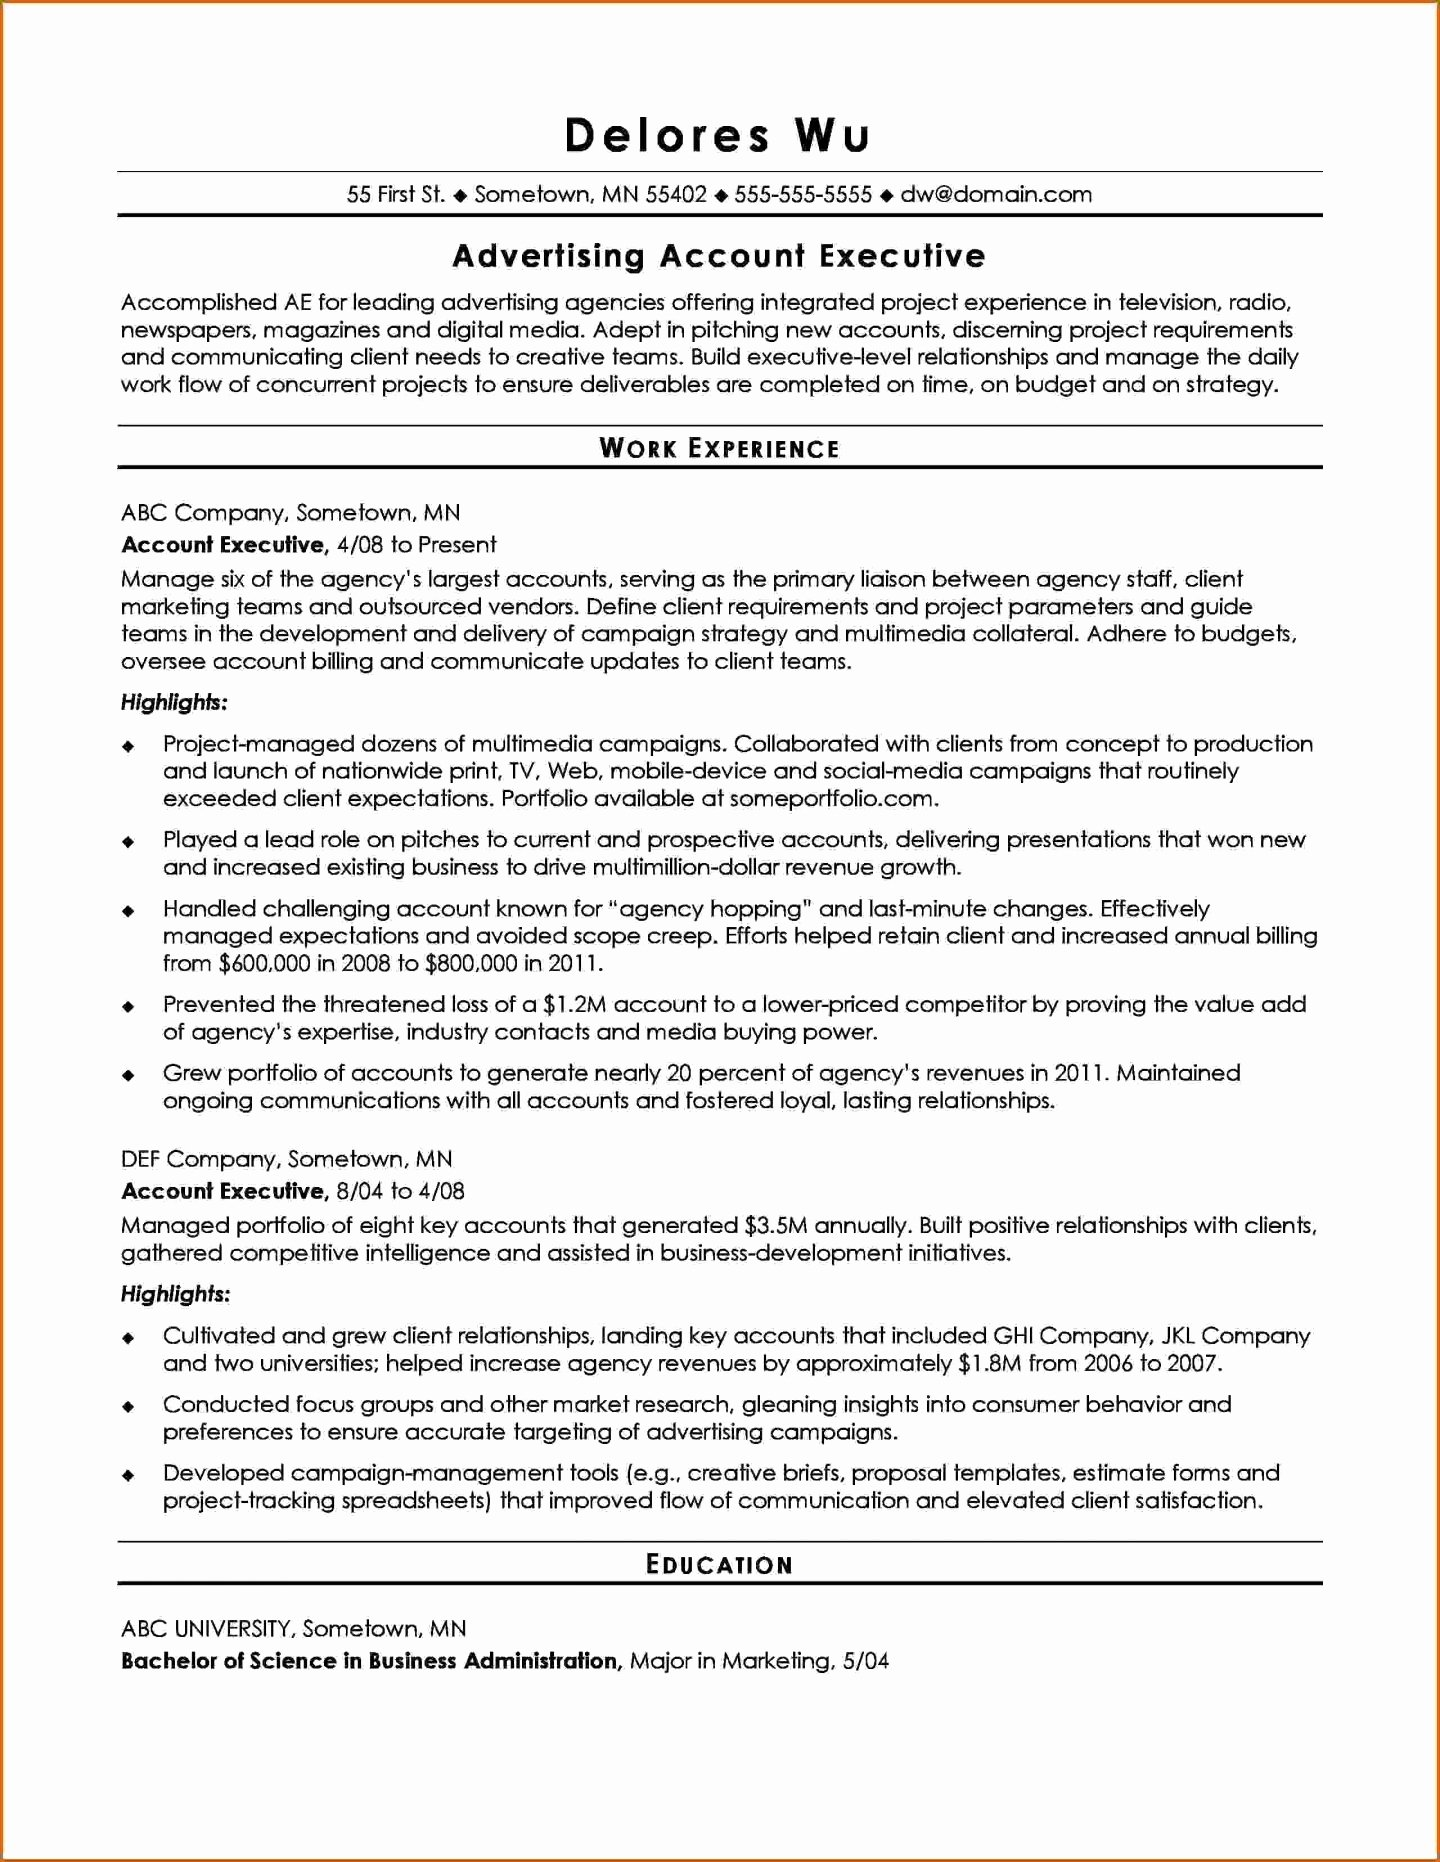 Digital Marketing Contract Template New [download] Digital Marketing Contract Template Bonsai